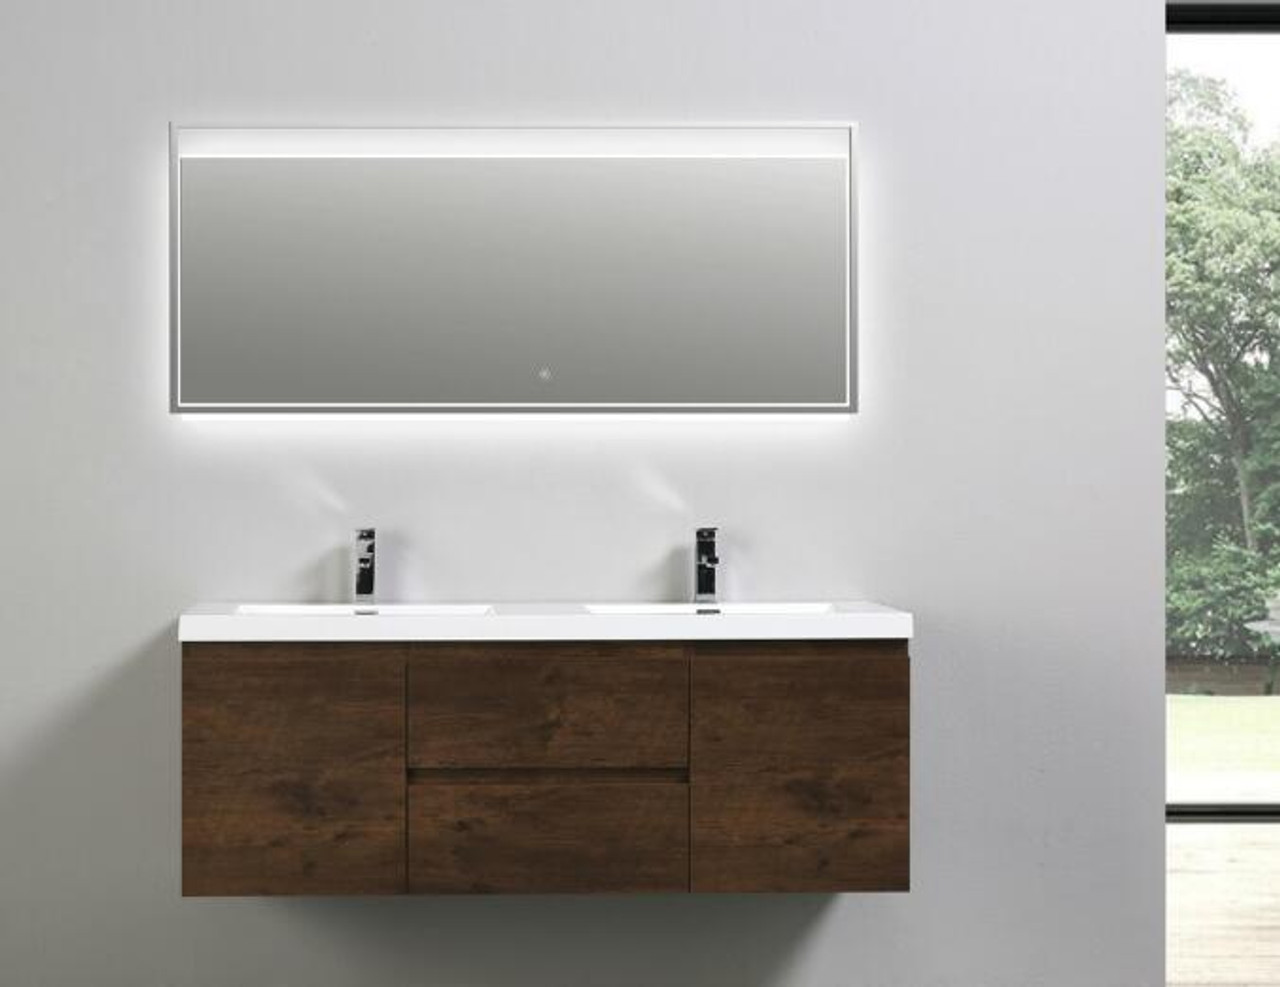 MORENO MOB DOUBLE SINK ROSEWOOD WALL MOUNTED MODERN BATHROOM - Bathroom vanity stores in los angeles